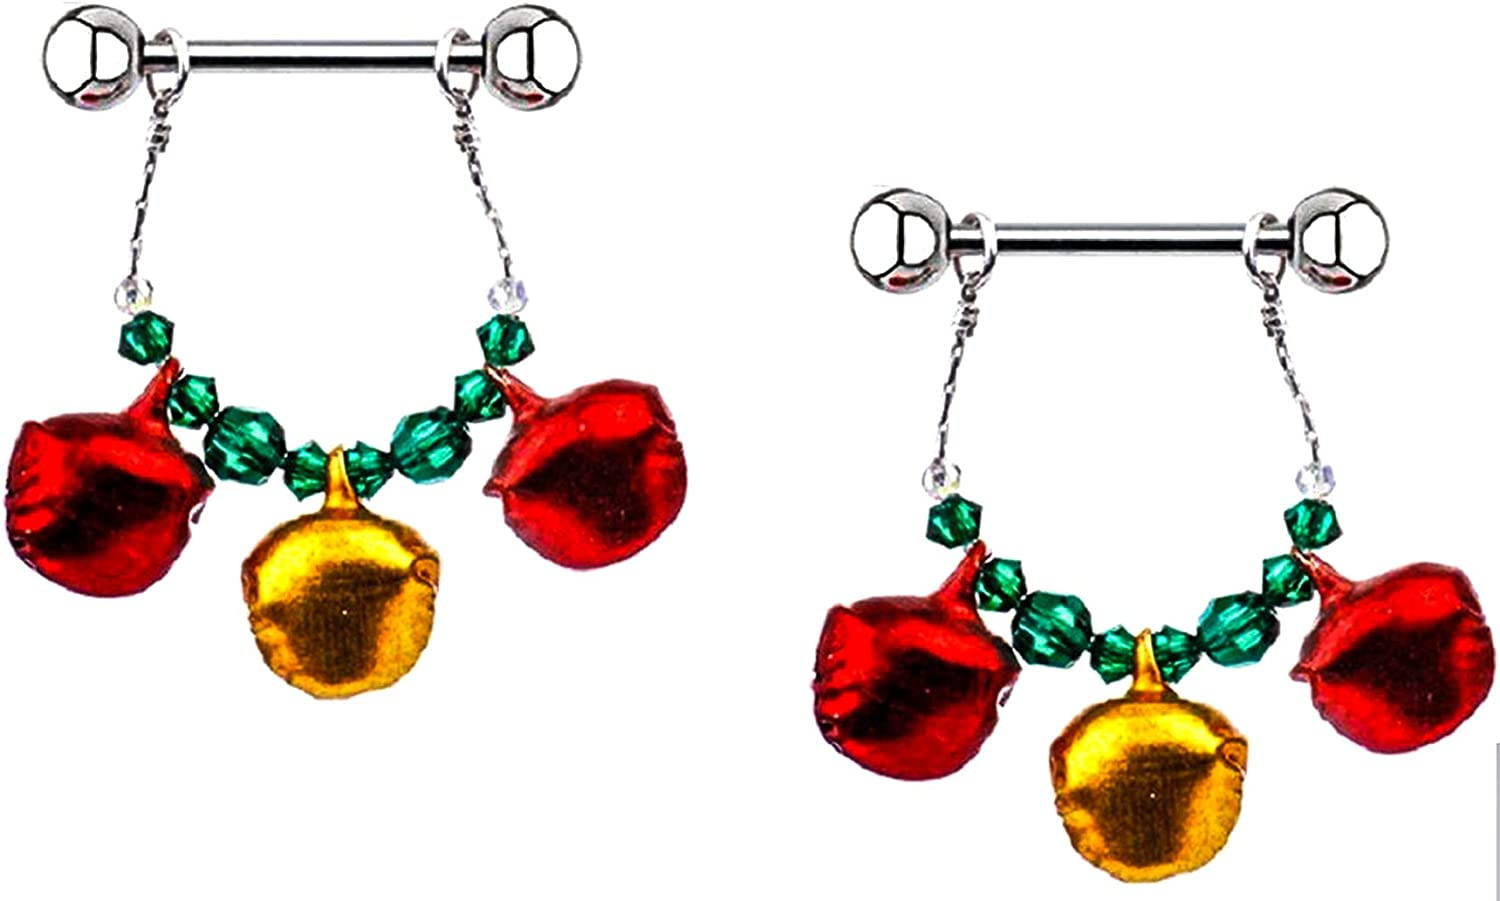 14G Stainless Steel Nipple Jewelry with Double Gem Red.Sold as a Pair